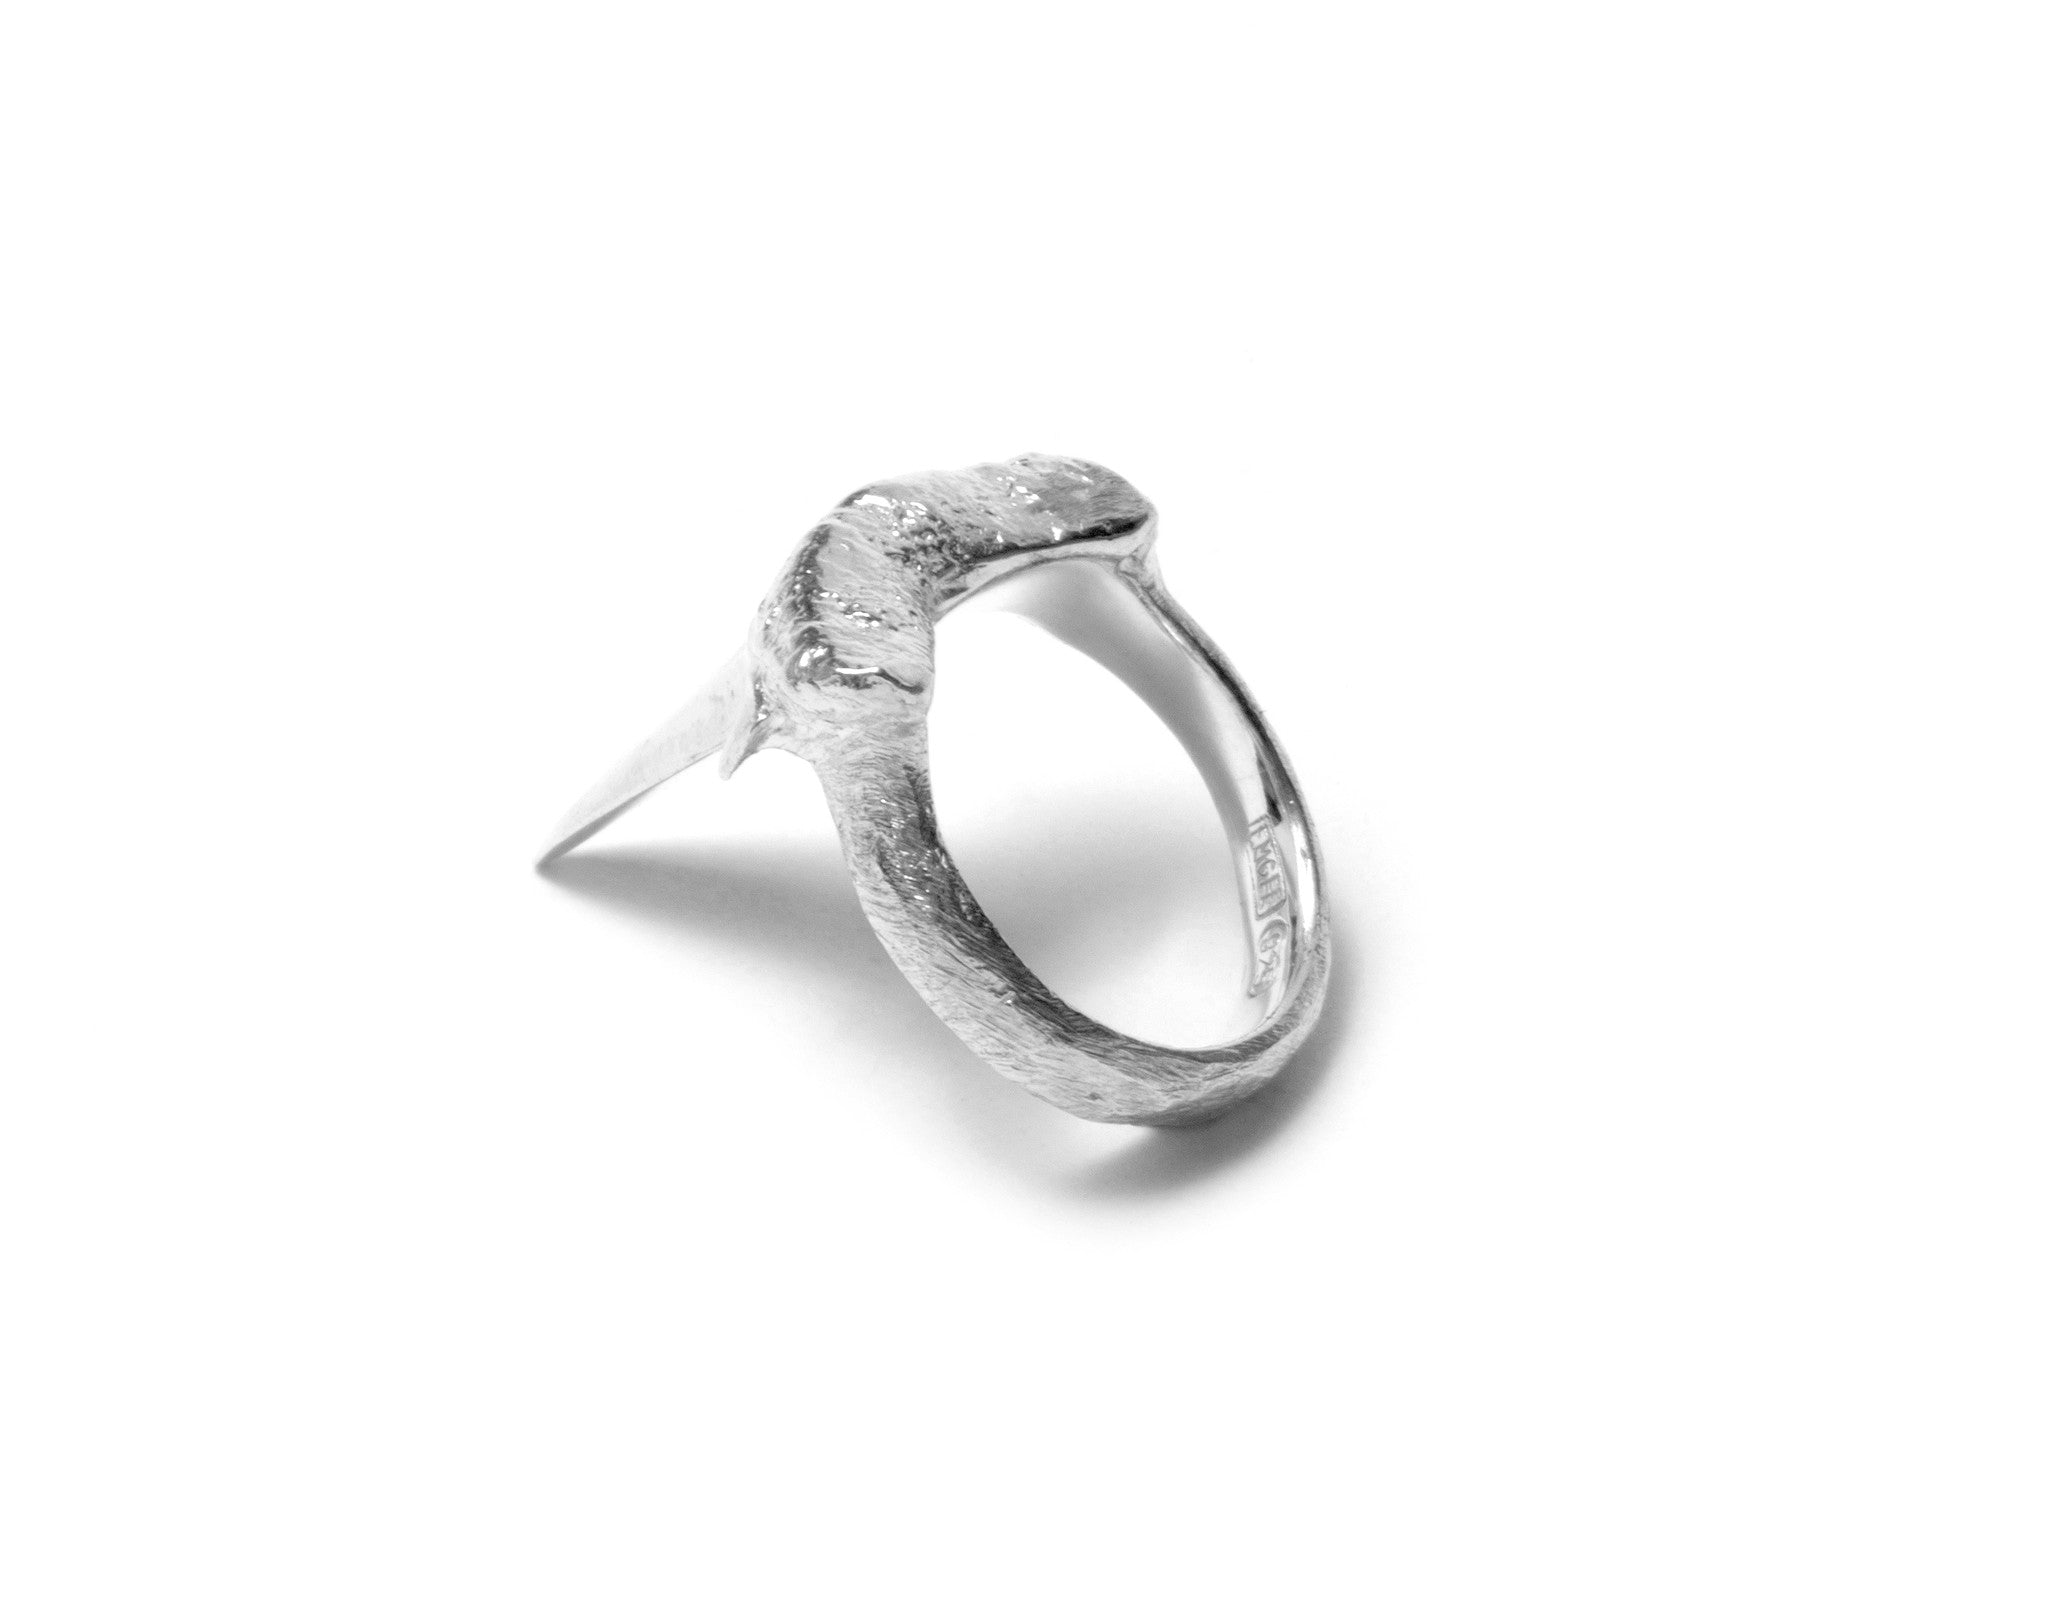 Small sharks tooth ring ~ (polished silver)